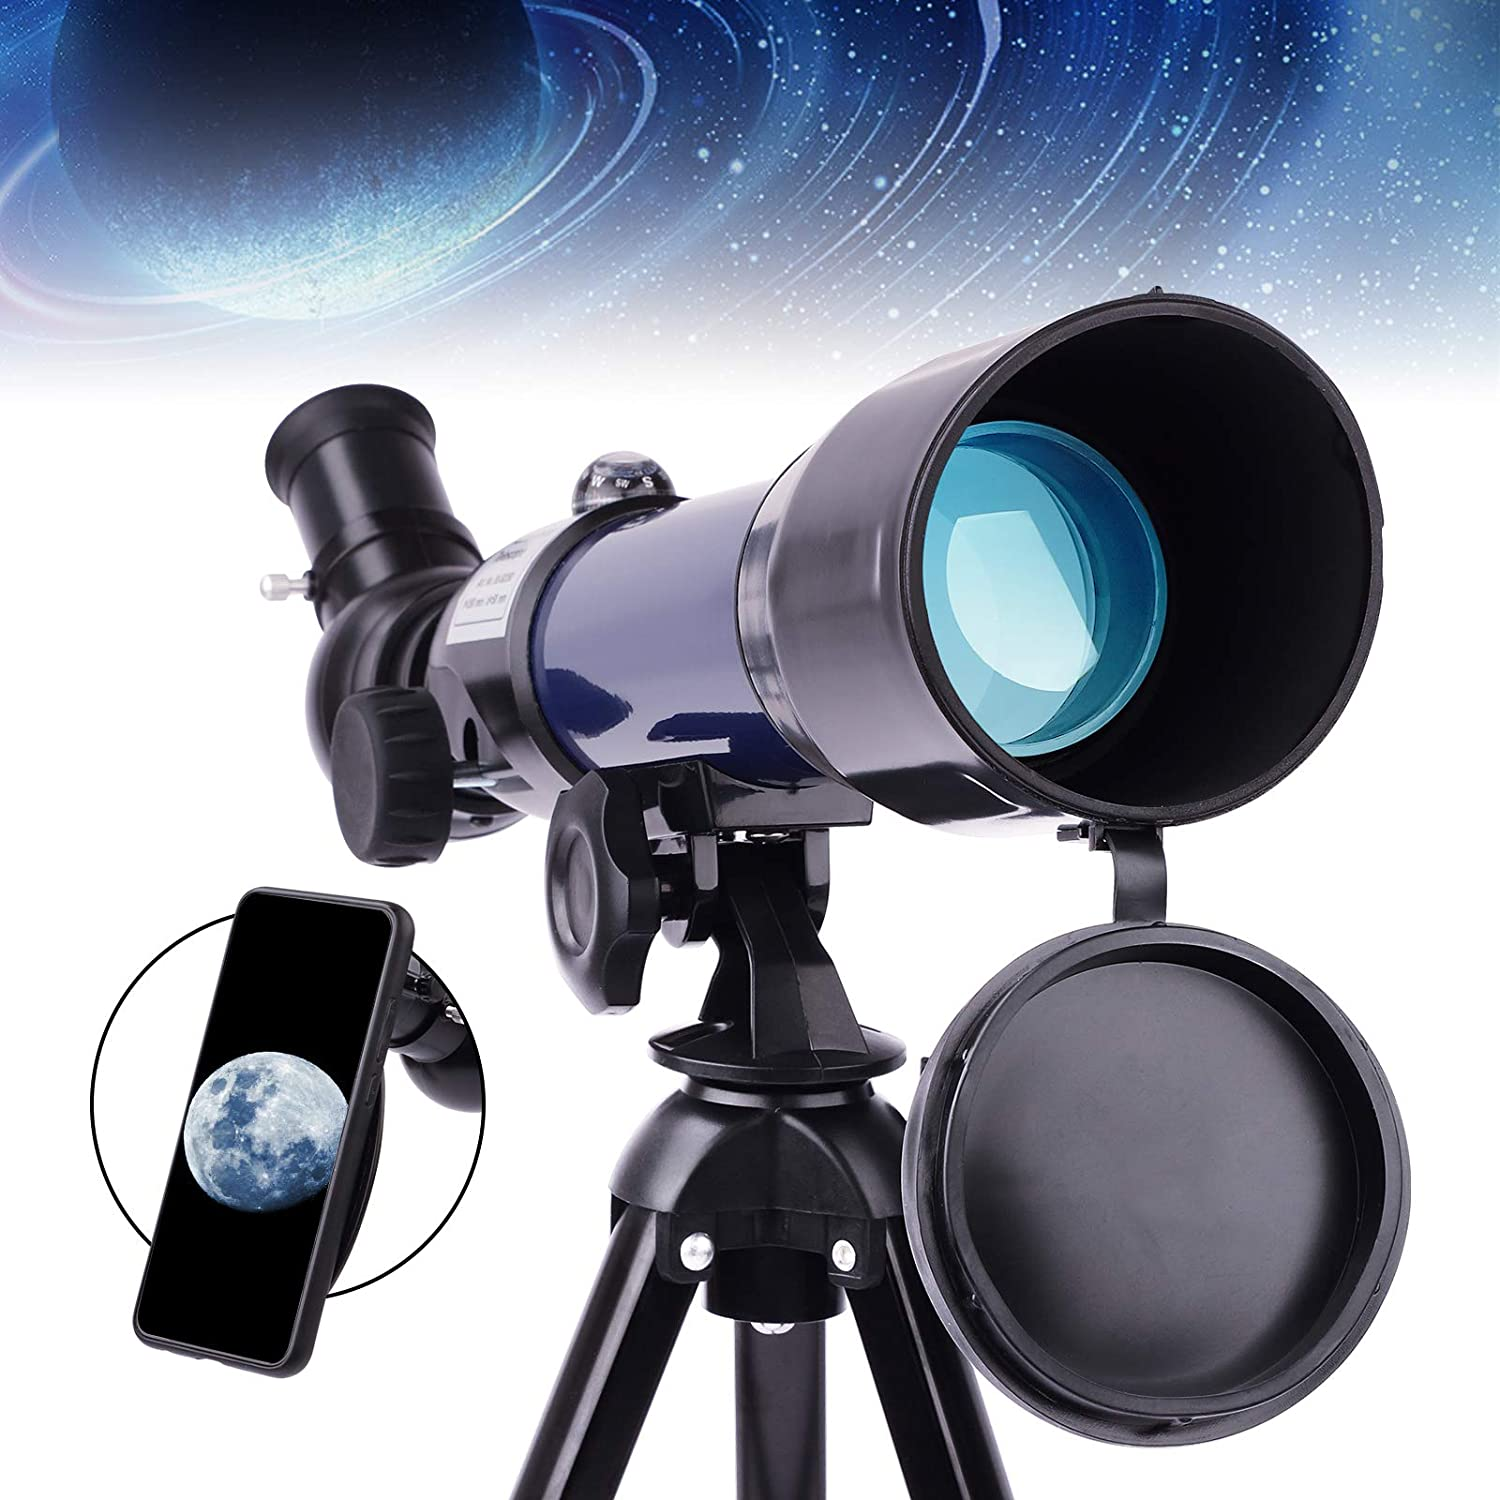 Beginner Telescope with Phone Adapter-Telescope for Kids 50mm Aperture and 360mm Focal Length Professional Astronomy Refracting Telescope Compact Portable